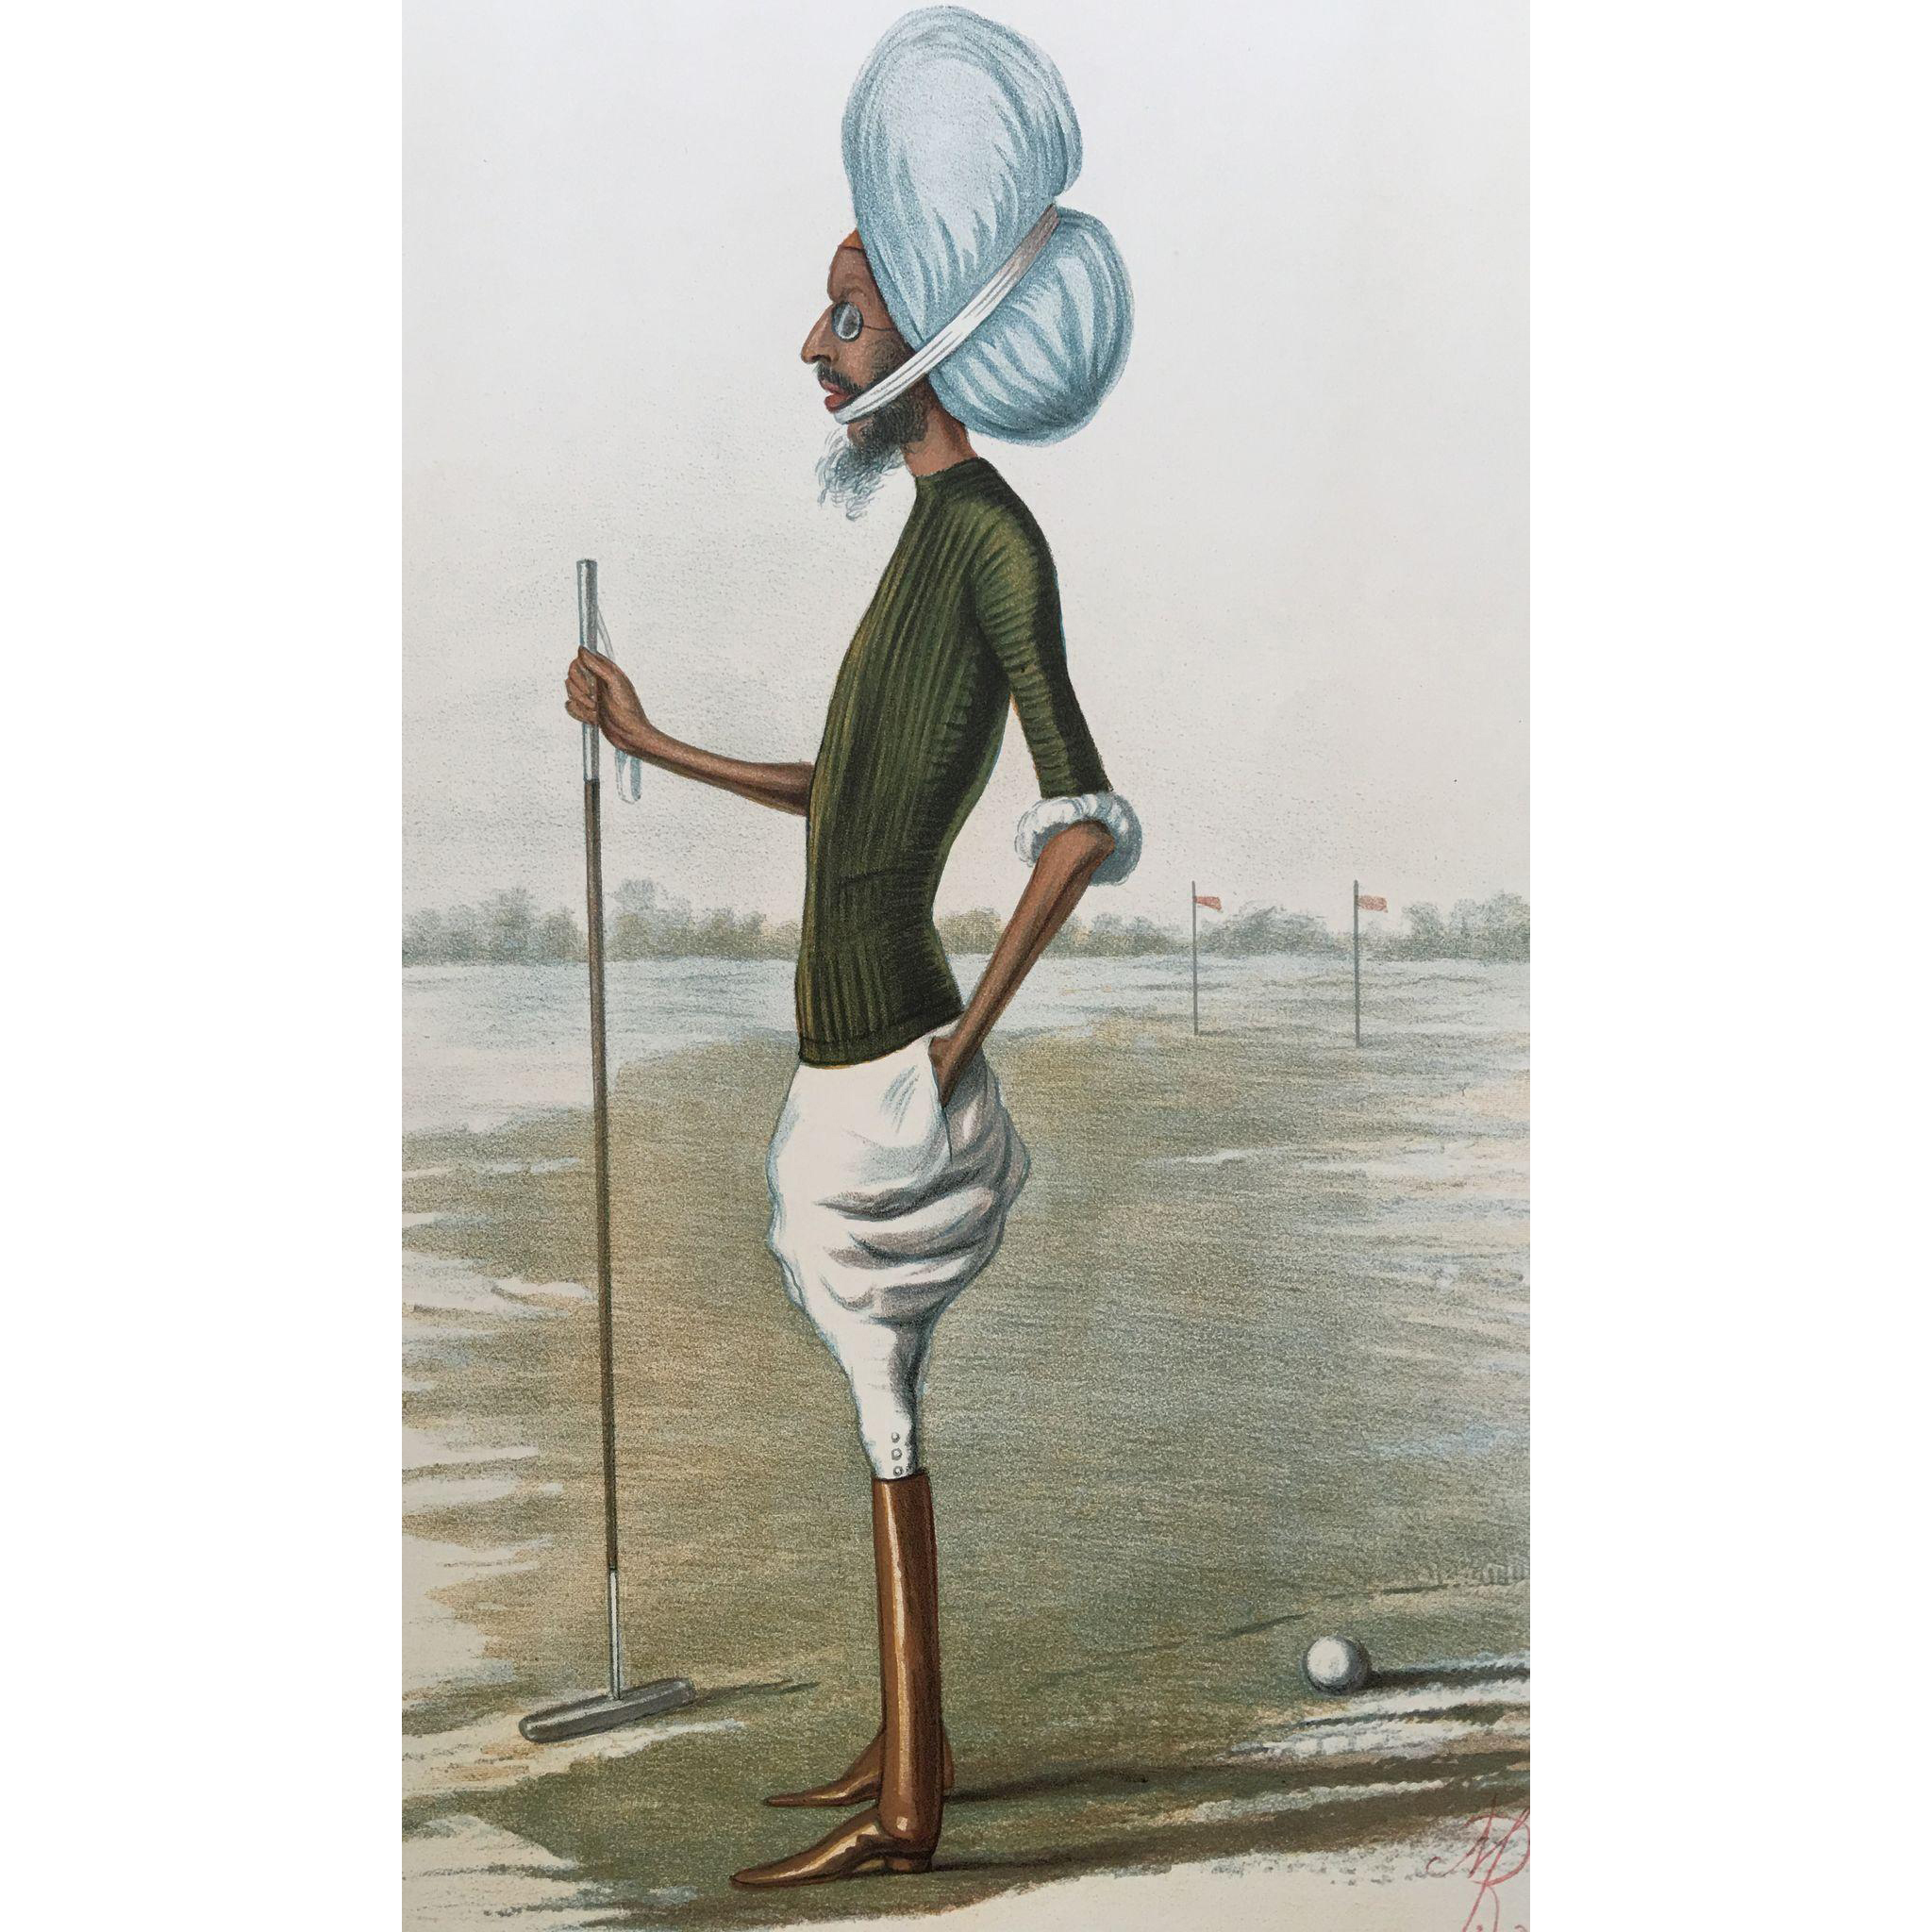 Antique Original Vanity Fair Polo Print - The Maharajah of Patiala